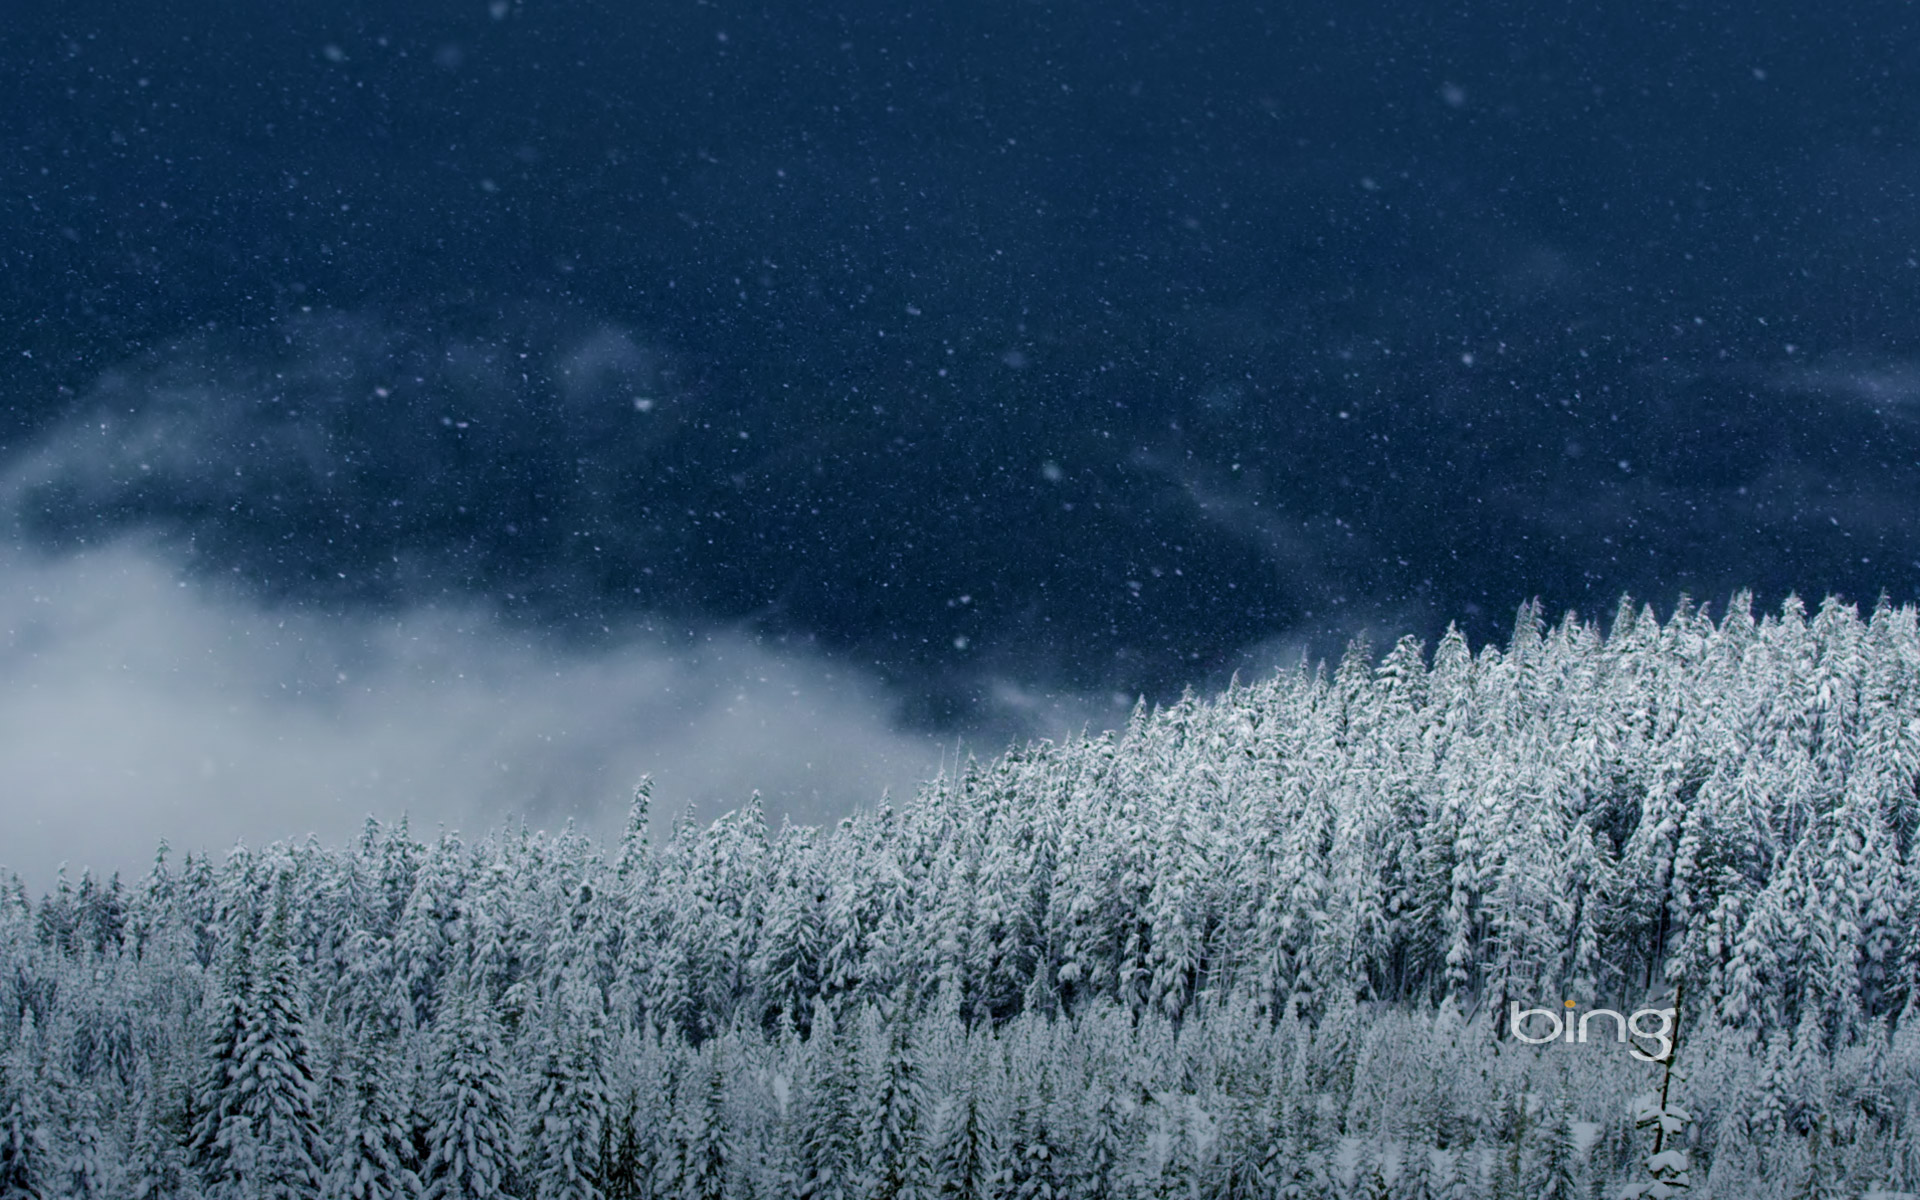 Snowing on trees in Squamish, B.C., Canada